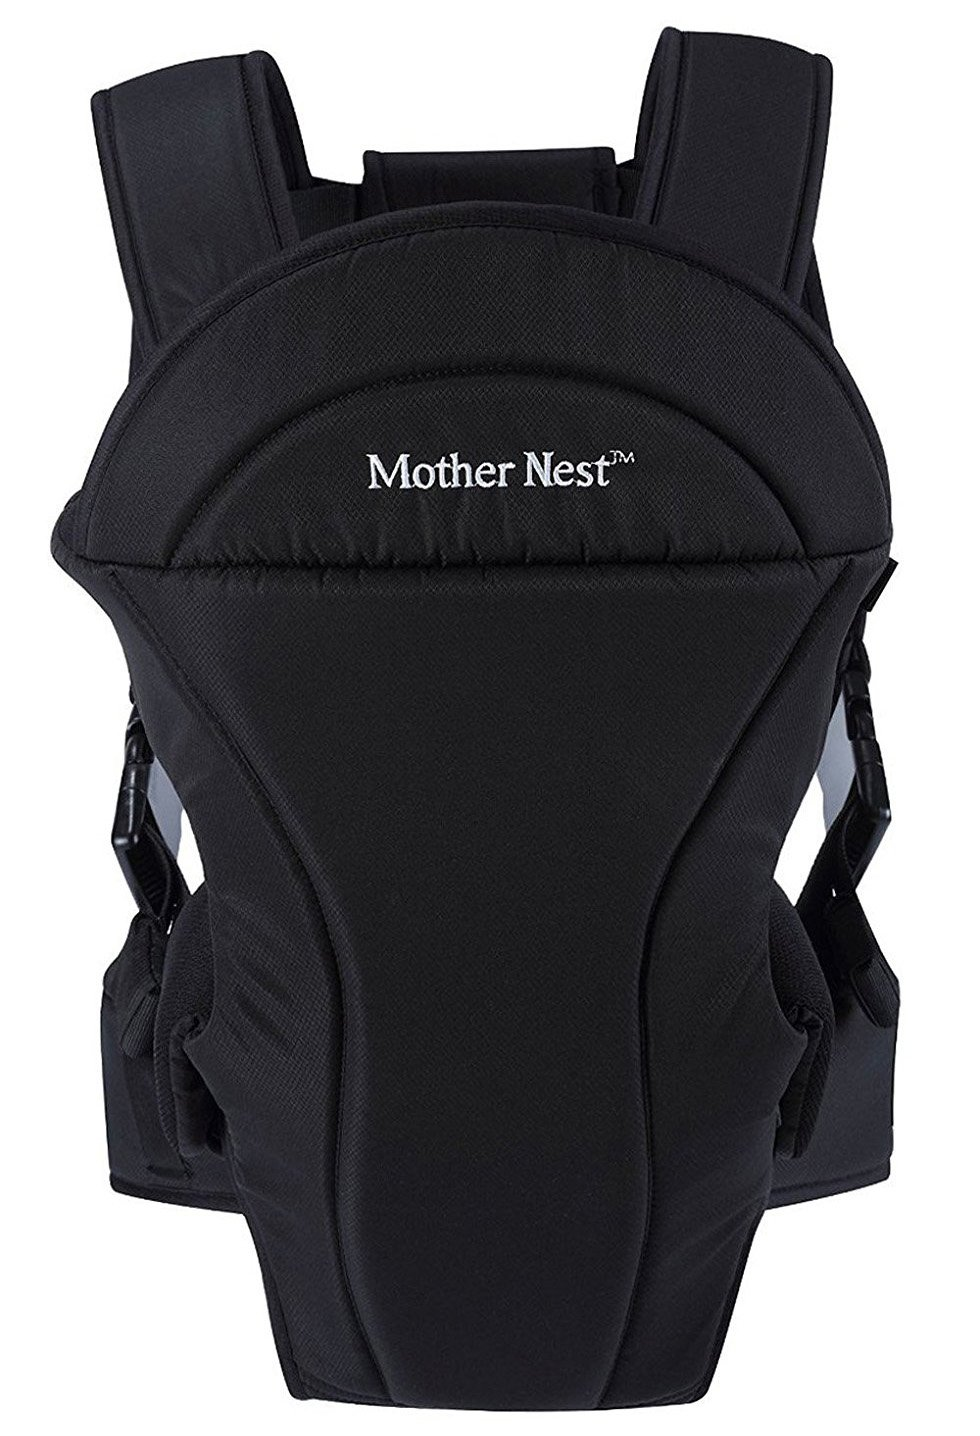 Mother Nest Baby Carrier 3 Carrying Positions for Infants and Toddlers 3.6-15kg(8-33lbs) -Soft Cool Air Mesh-Best